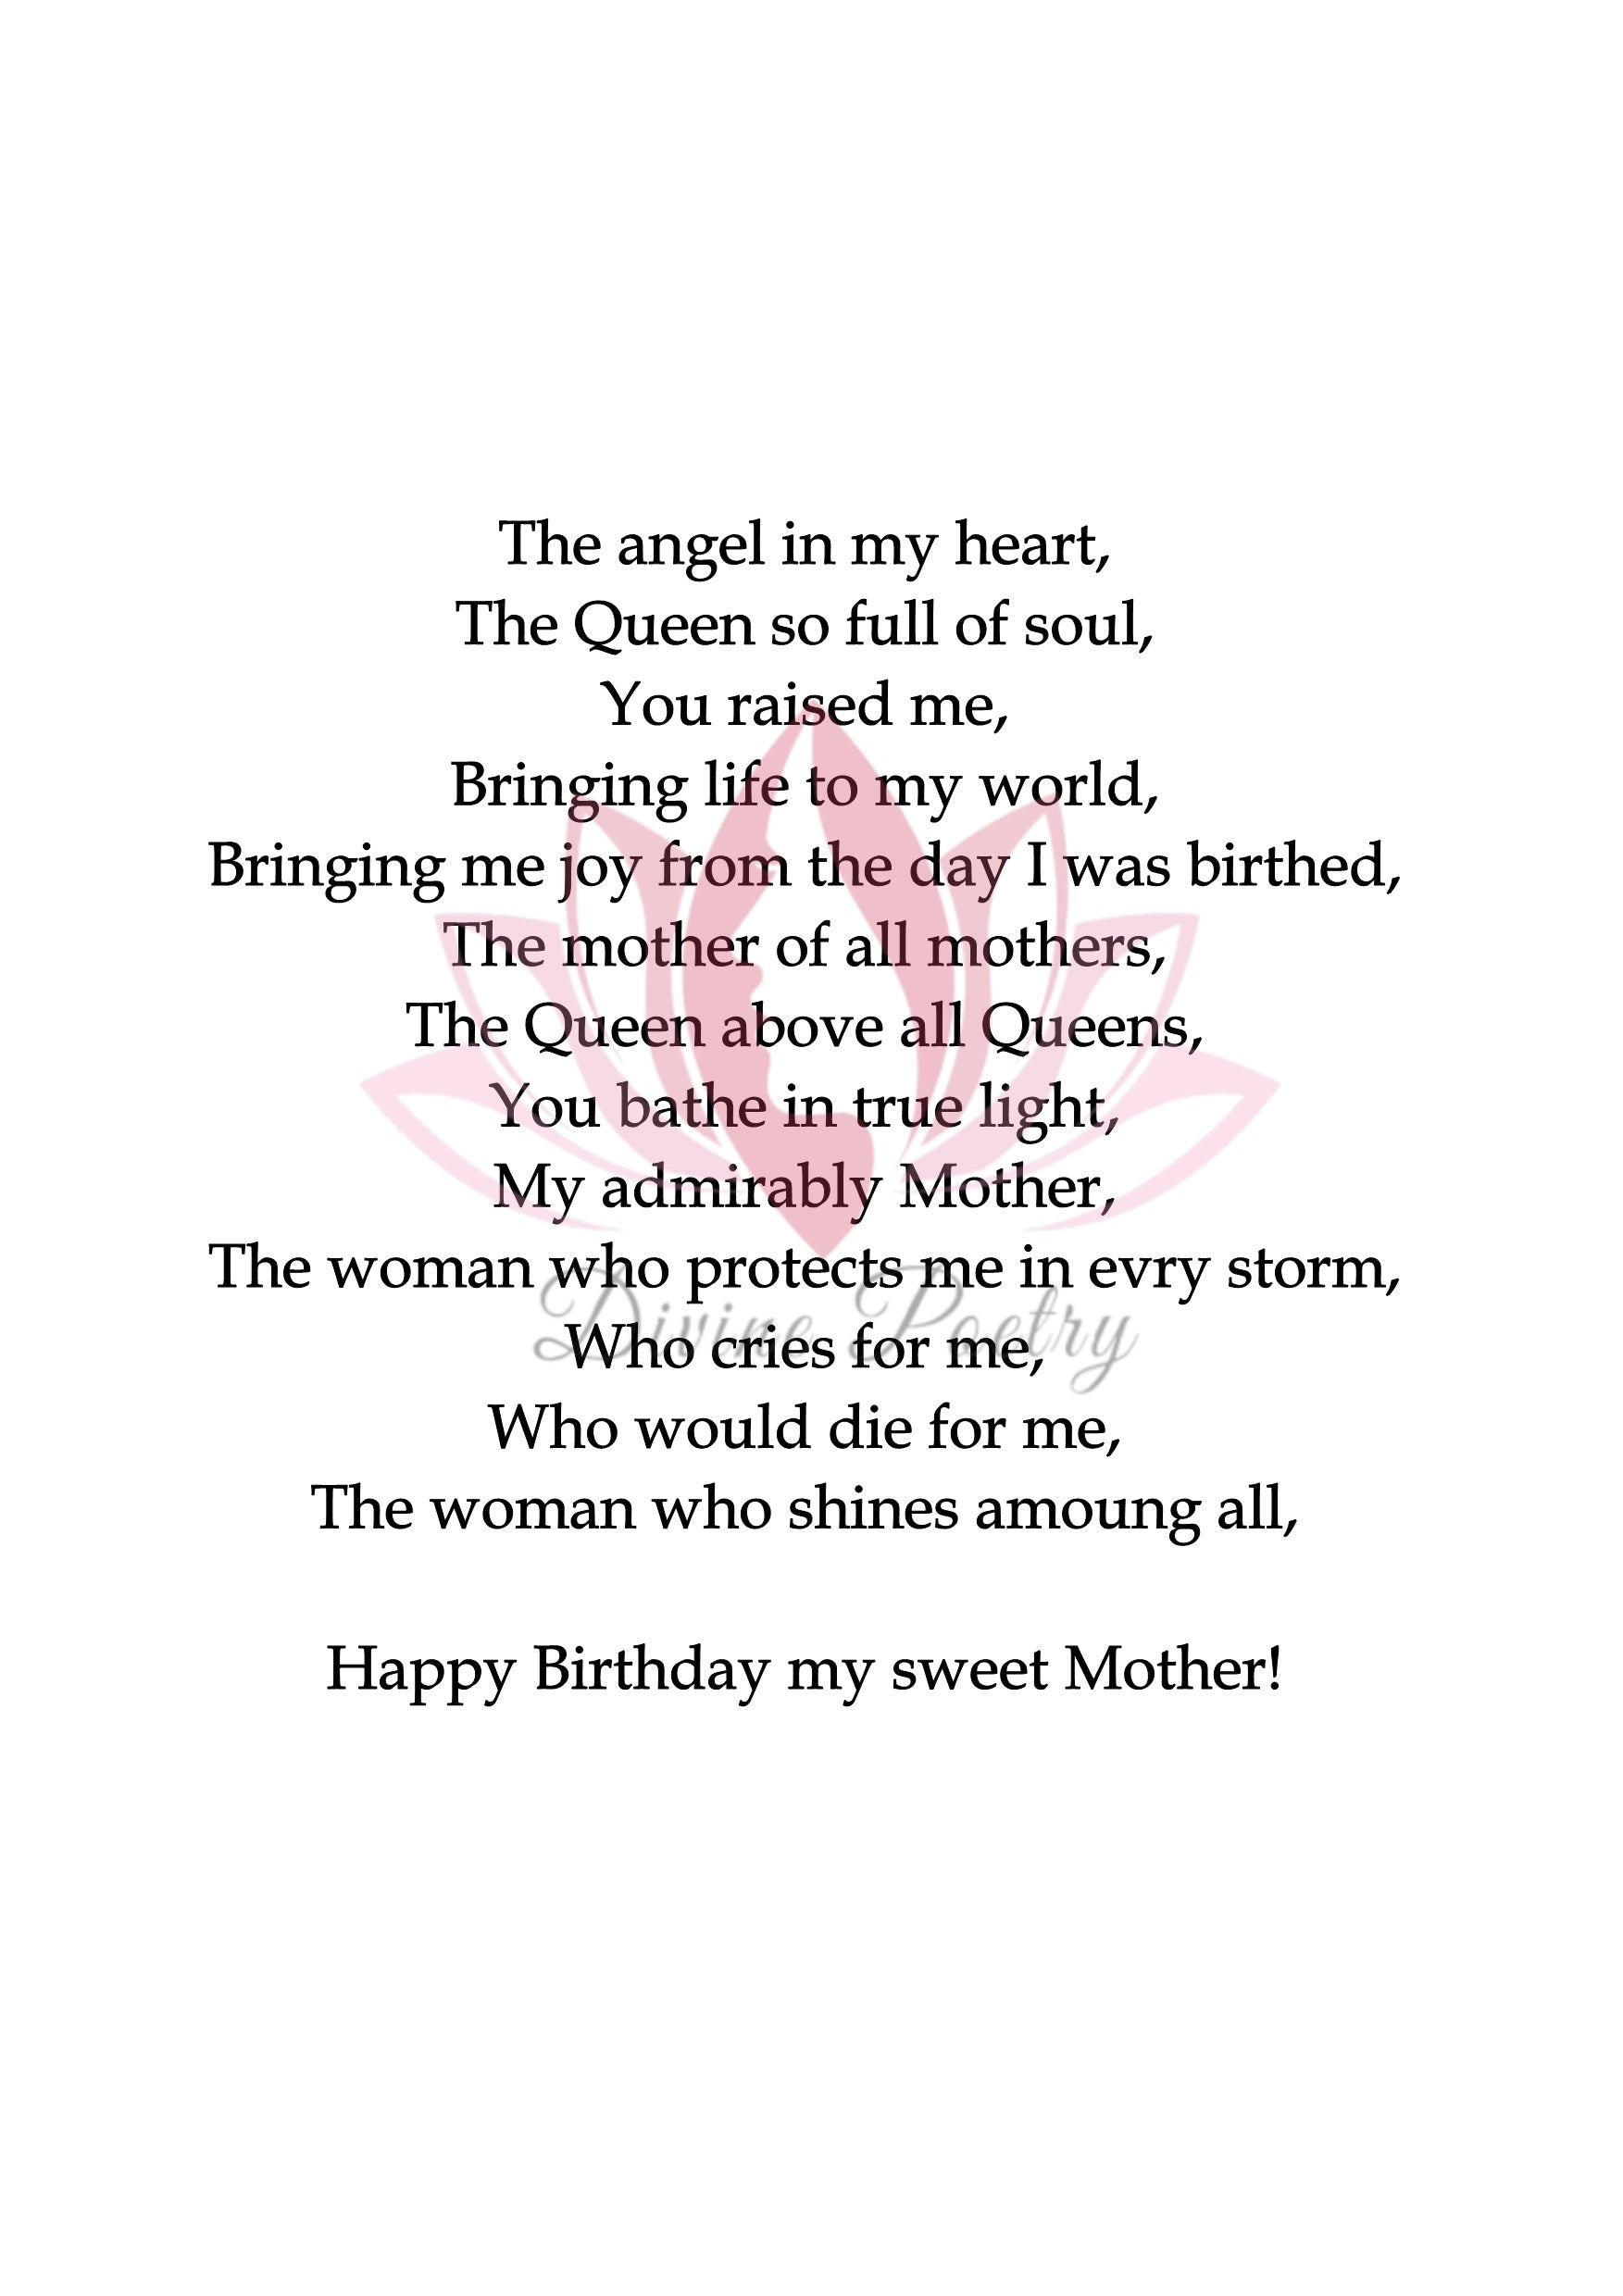 To My Sweet Mother - Divine Poetry